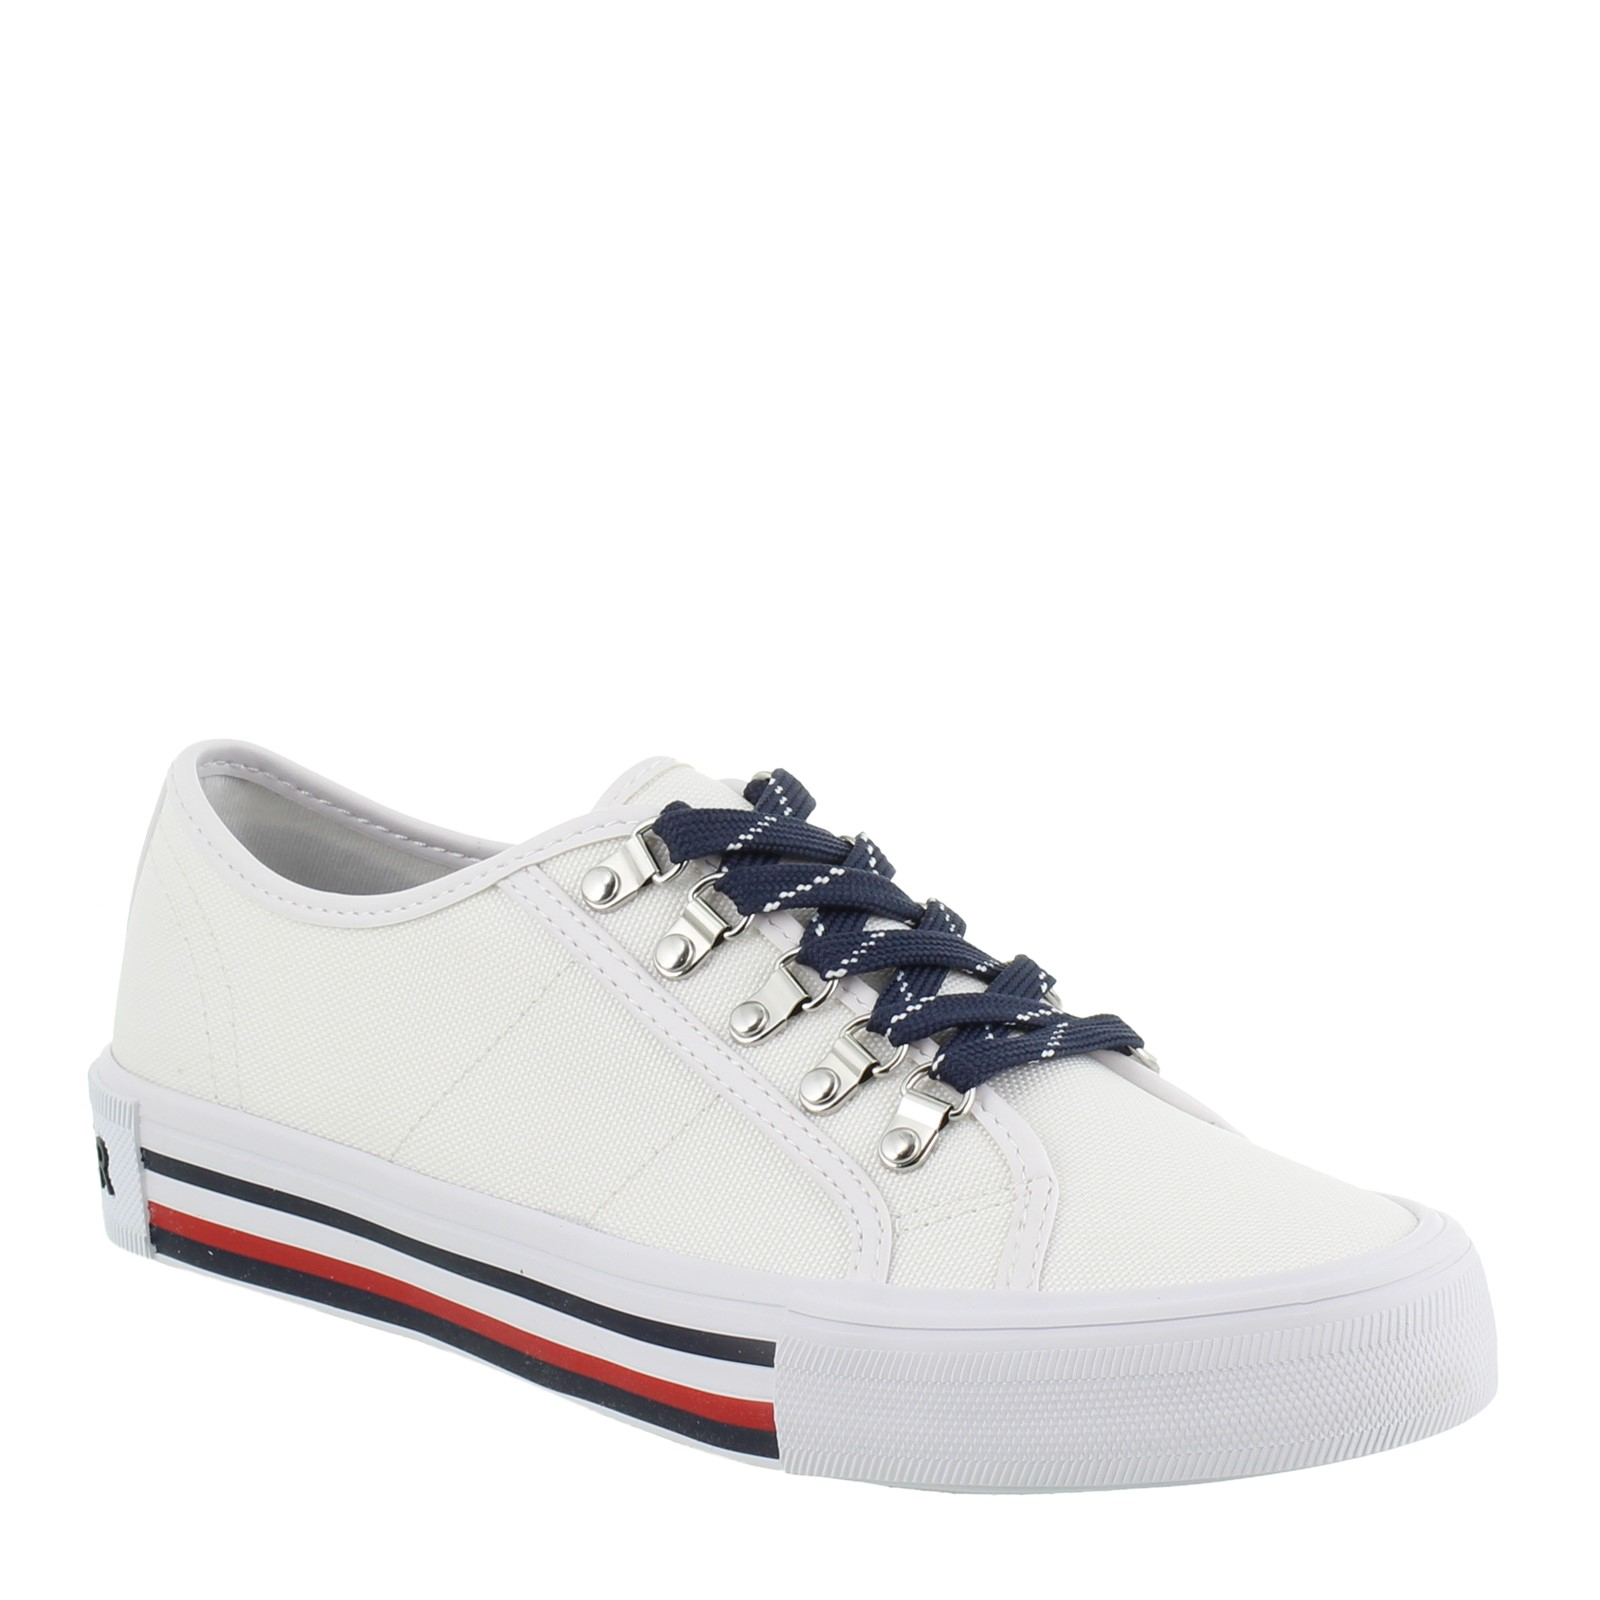 Women's Tommy Hilfiger, Retro Mesh Sneakers